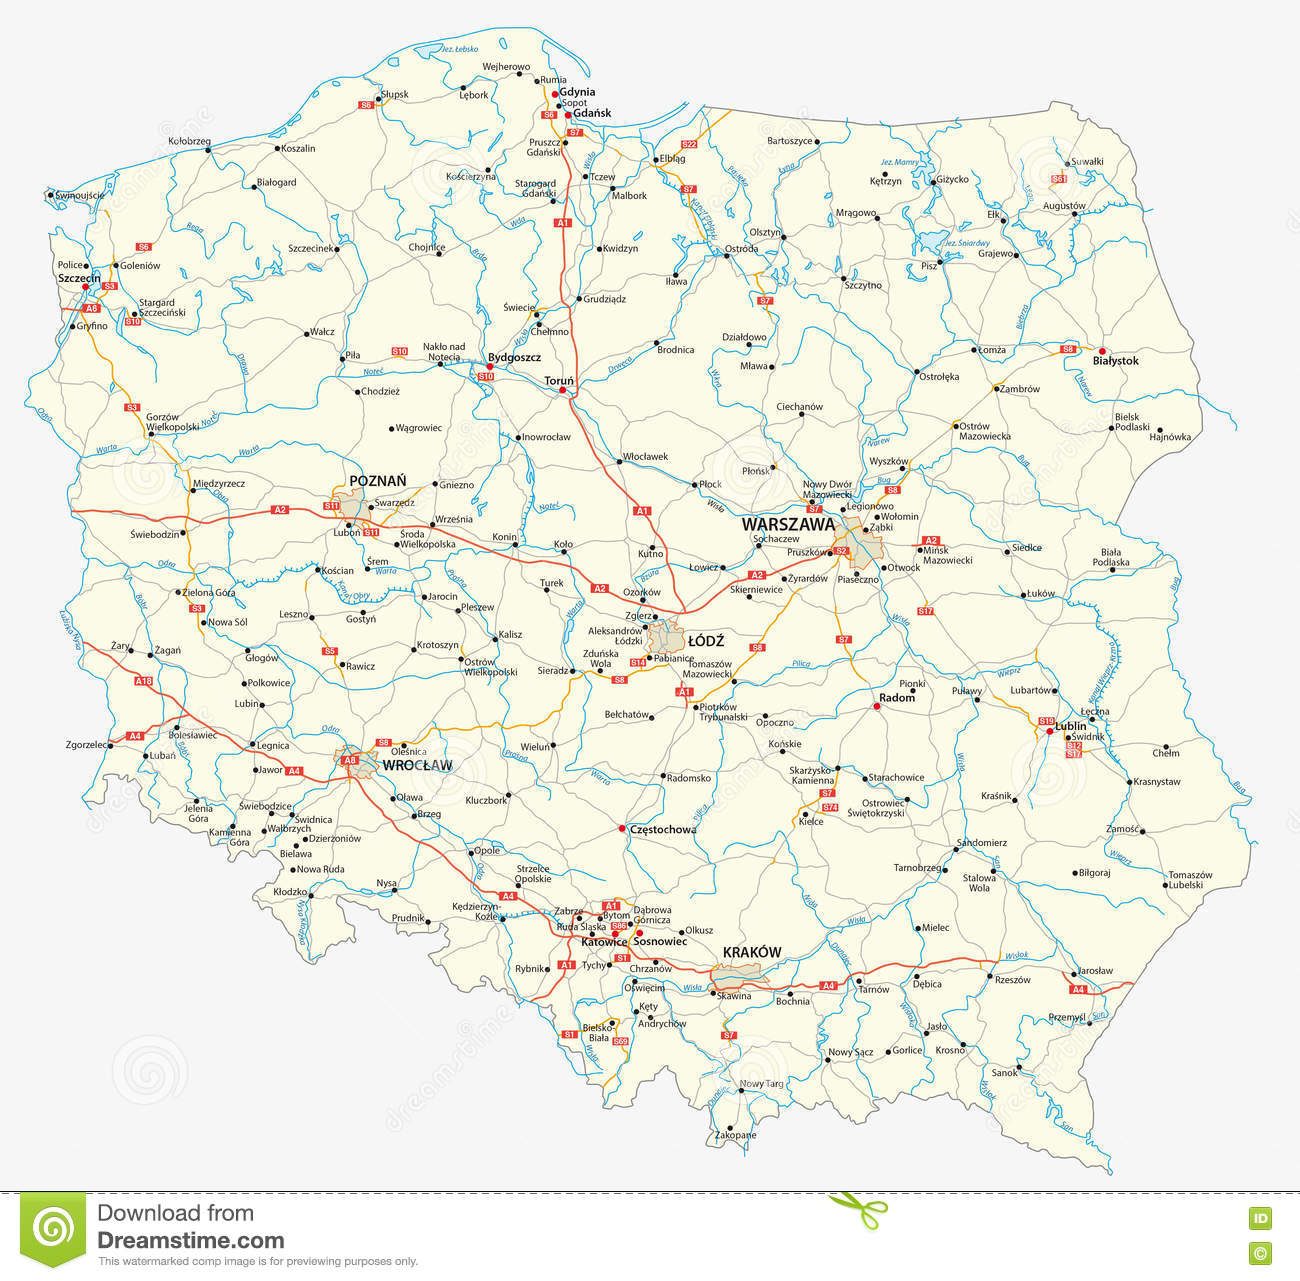 Poland road map stock illustration illustration of poland 71840963 download comp gumiabroncs Image collections